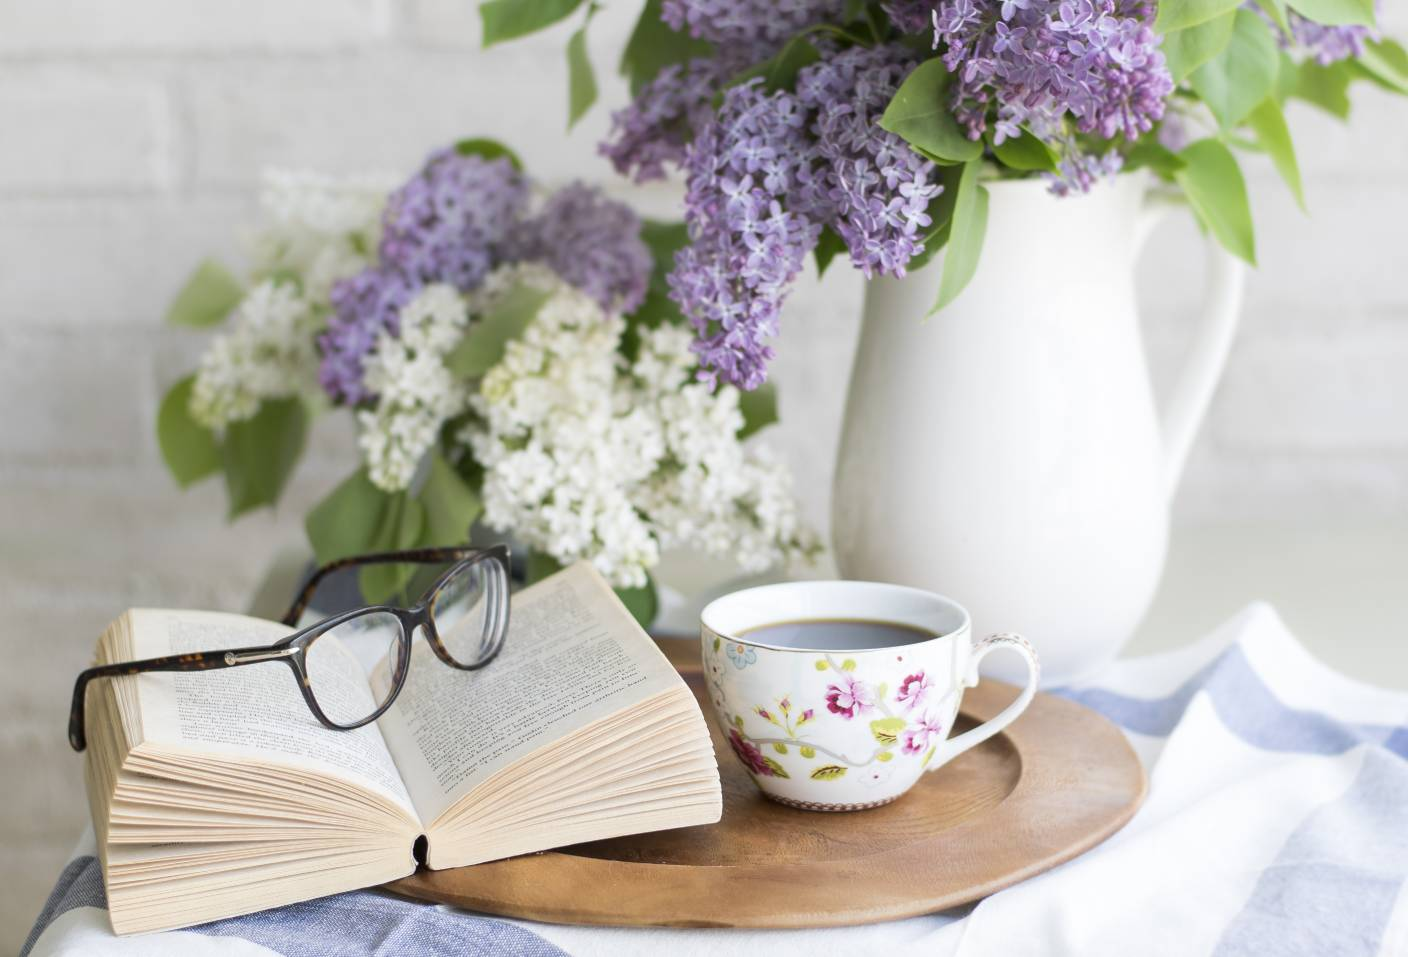 coffee-book-reading-glasses